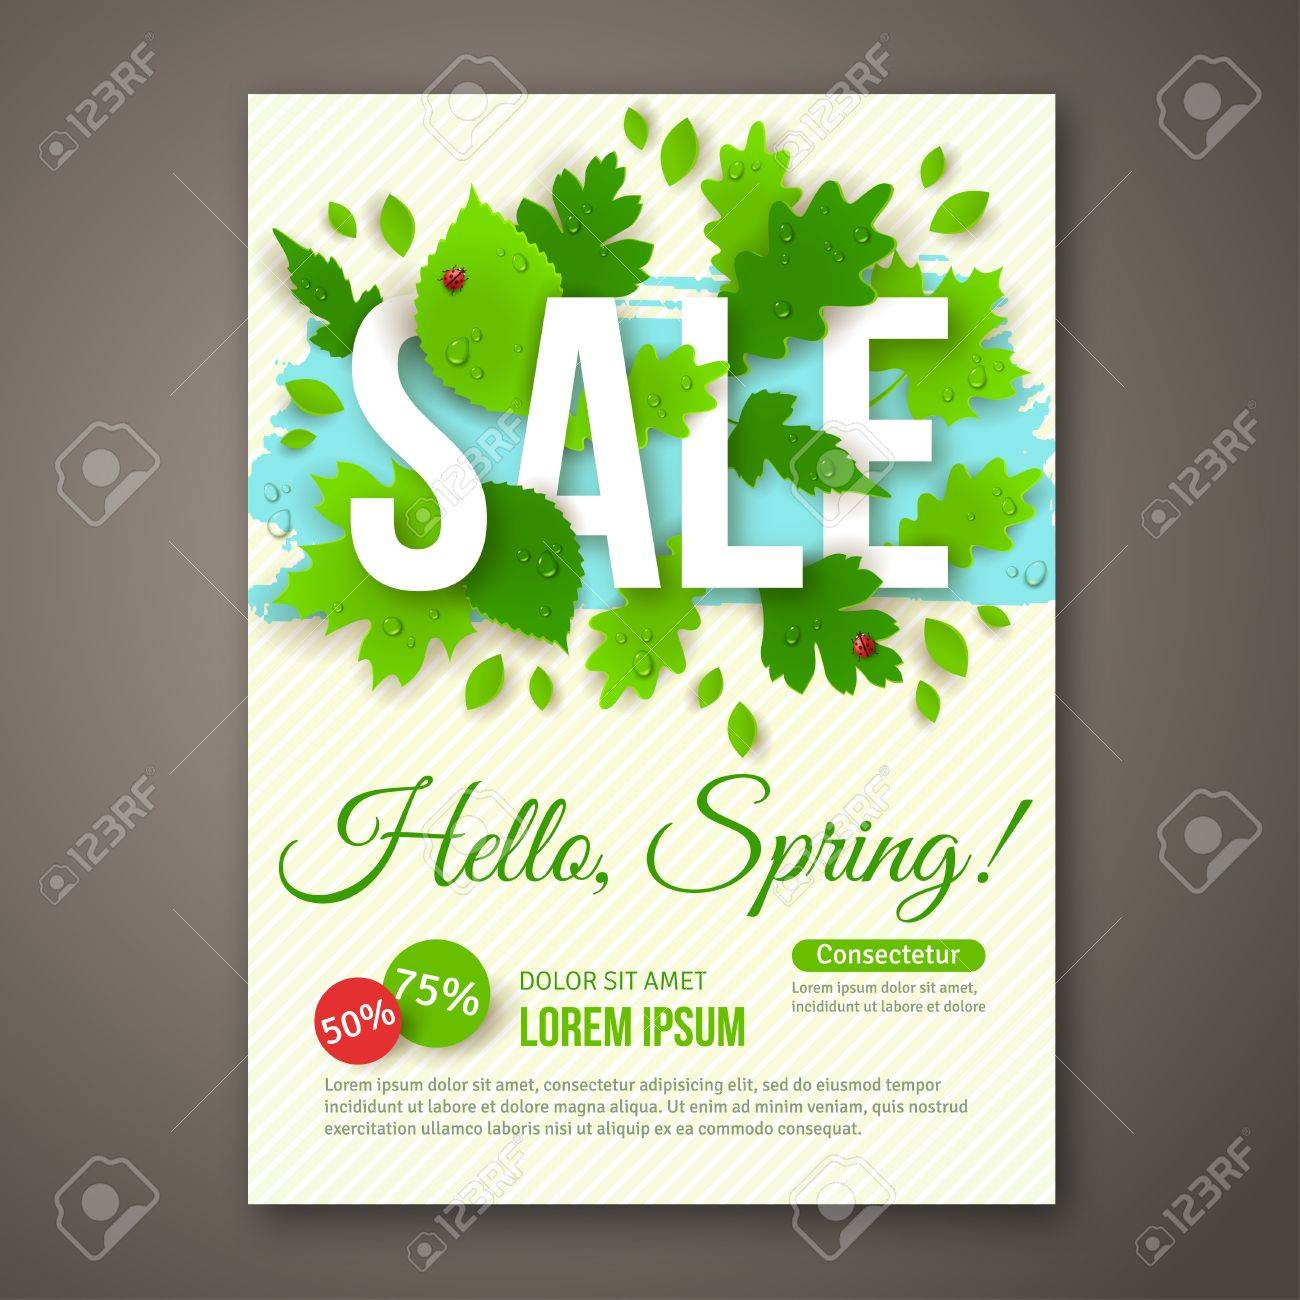 Spring Sale Flyer Design With Green Leaves Vector Illustration – Sale Flyer Design